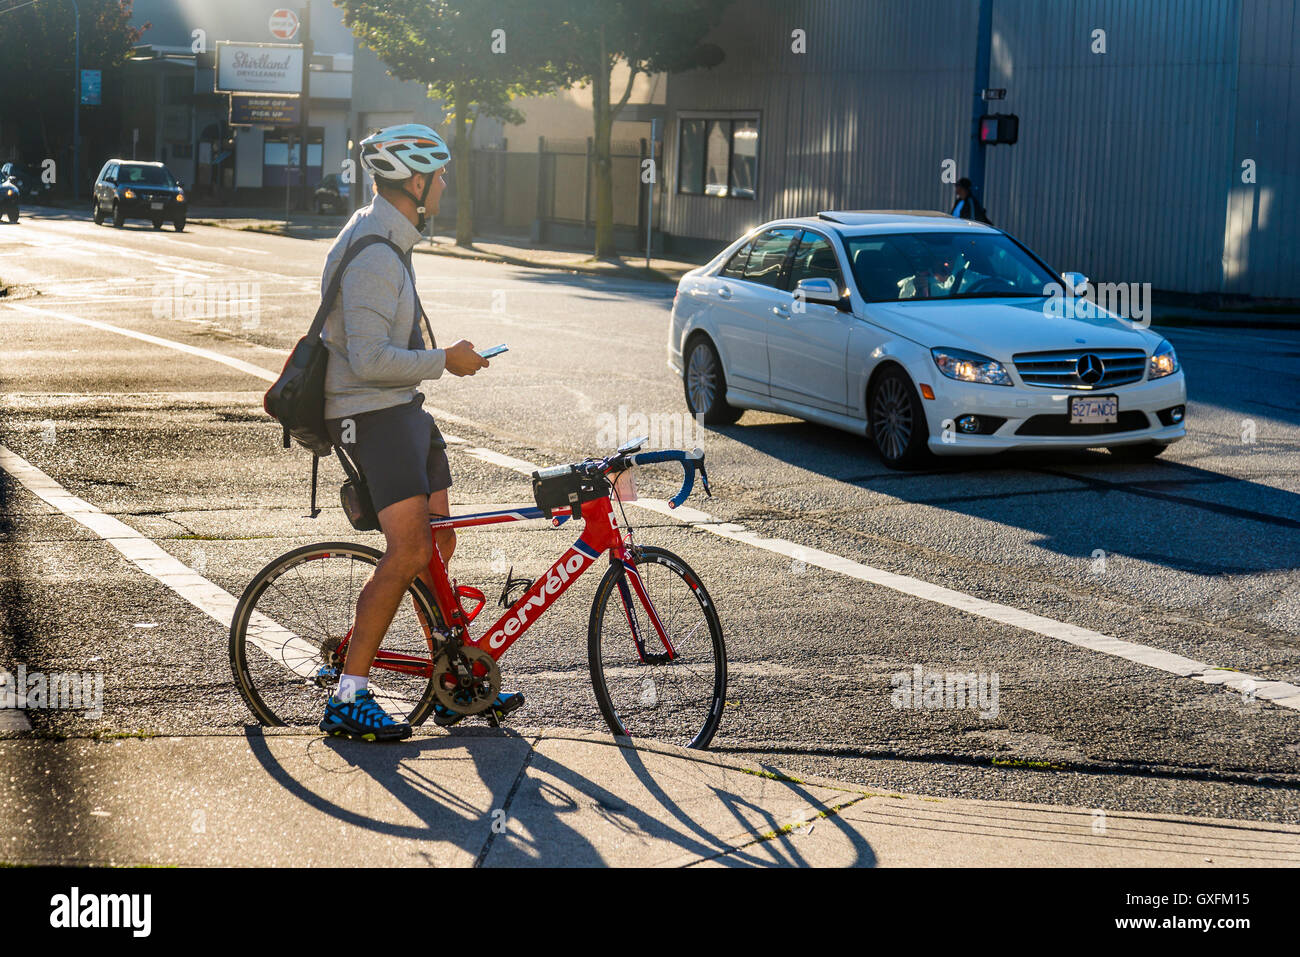 Cyclist checks cellphone as he waits at intersection - Stock Image